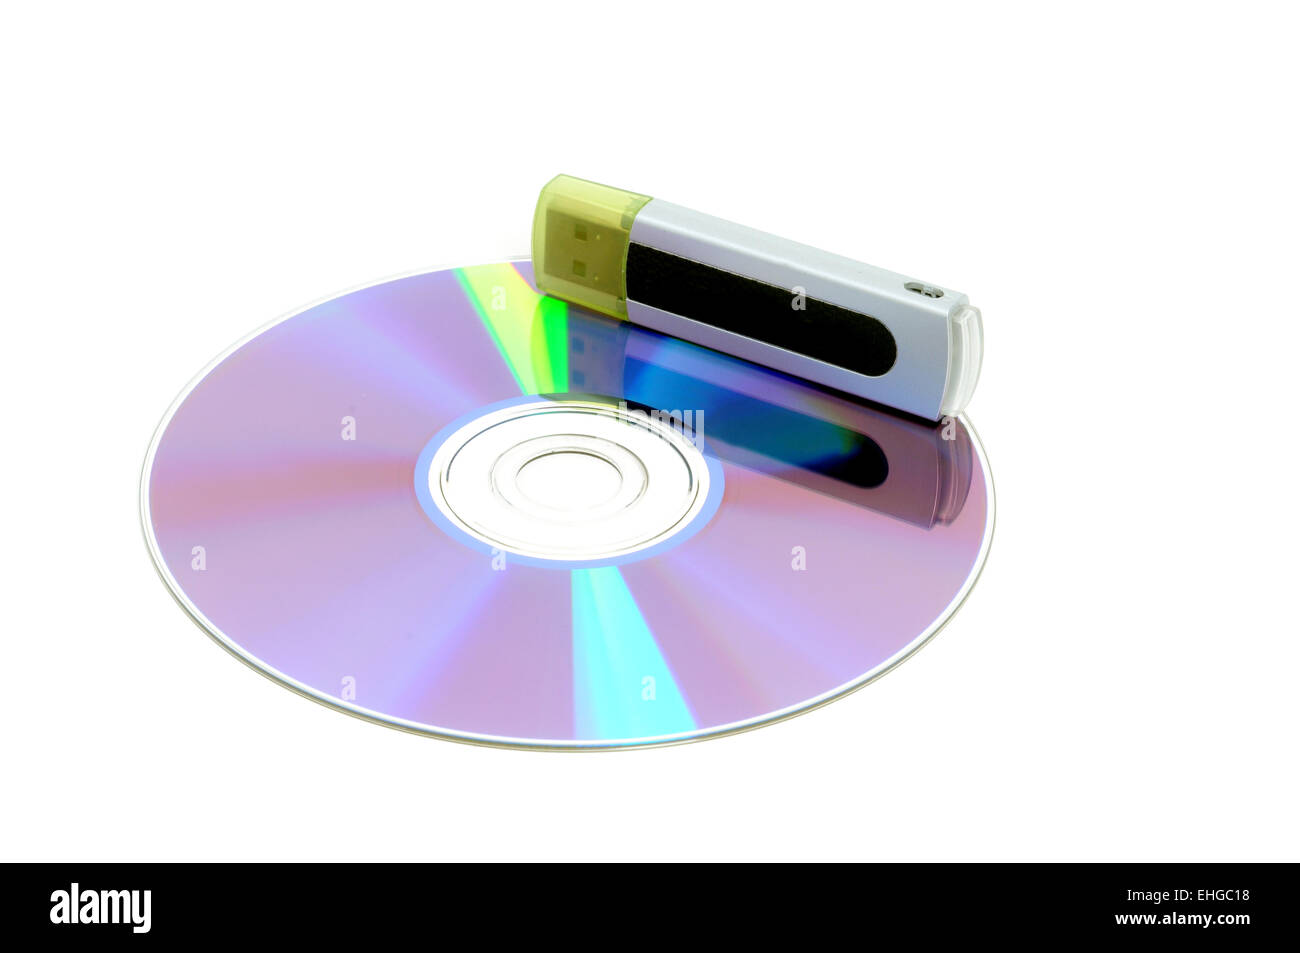 Datenschutz / Data protection - Stock Image